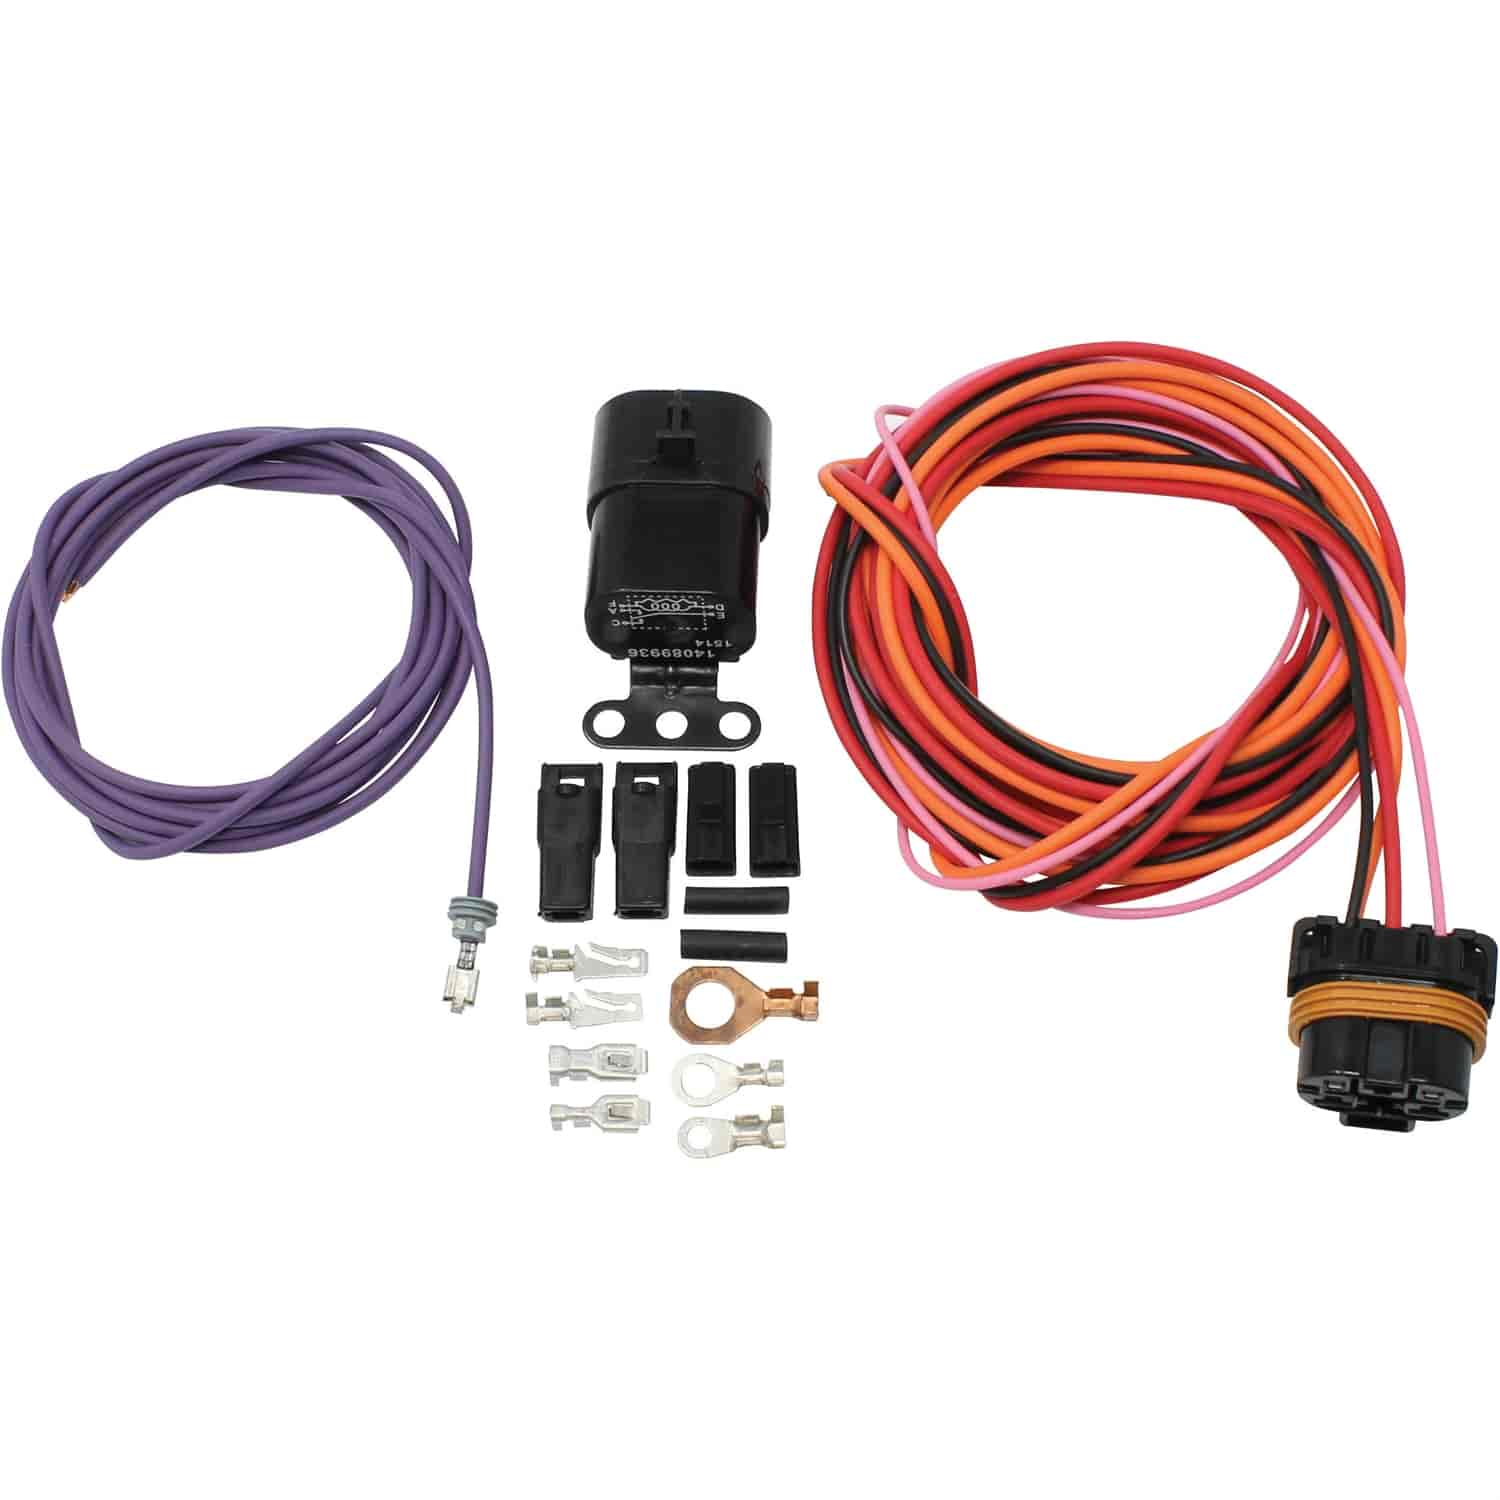 lamphus wiring harness haywire wiring harnes: american autowire 500093:  waterproof universal relay kit